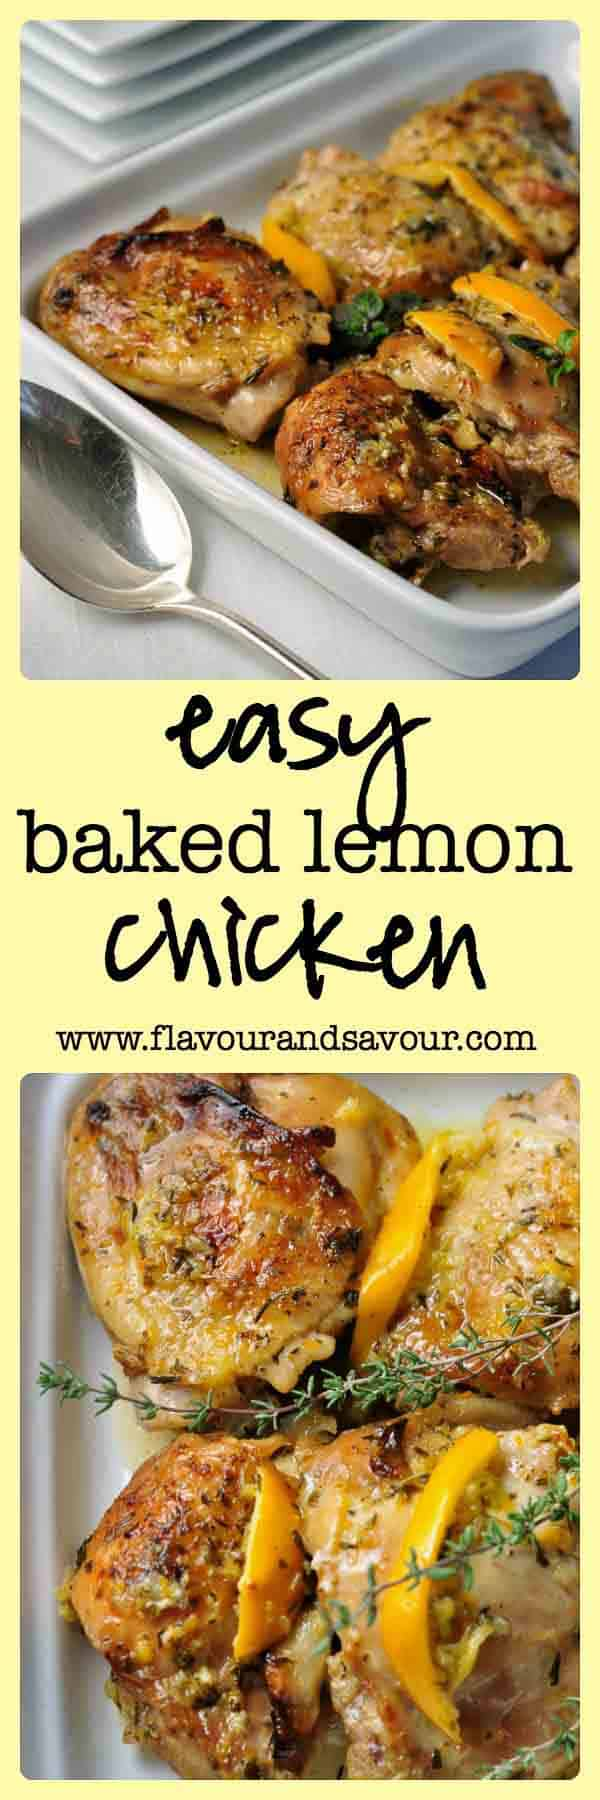 Easy Baked Lemon Chicken. Easy one-pot paleo dish that quickly became our family favourite. Fresh lemons, herbs and garlic make this easy Baked Lemon Chicken dish a quick weeknight meal and will have you dreaming of the sun-drenched Mediterranean.